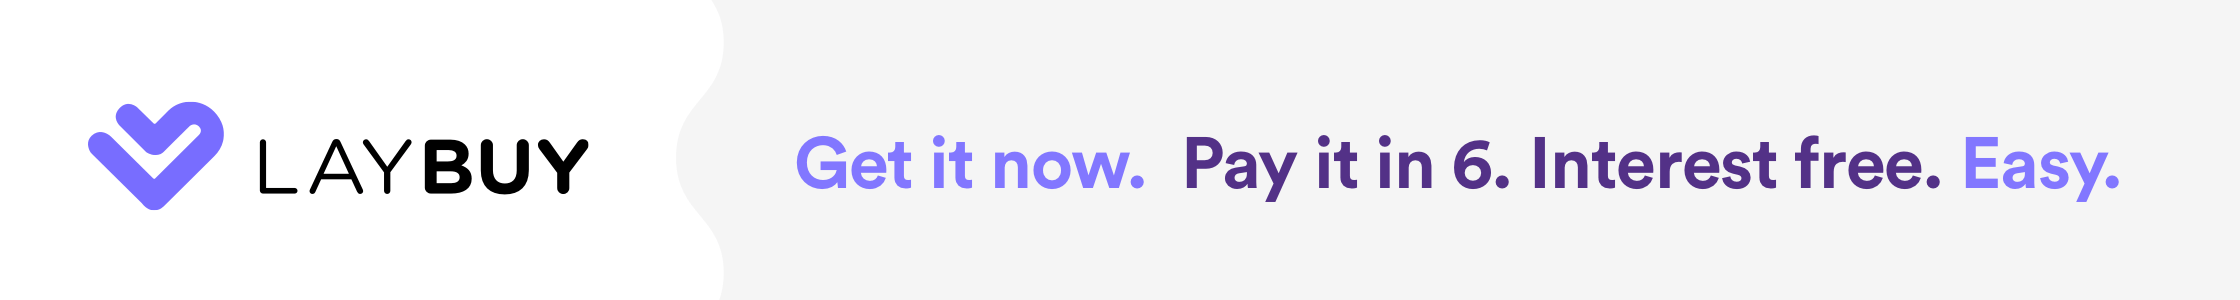 Laybuy Pay in 6